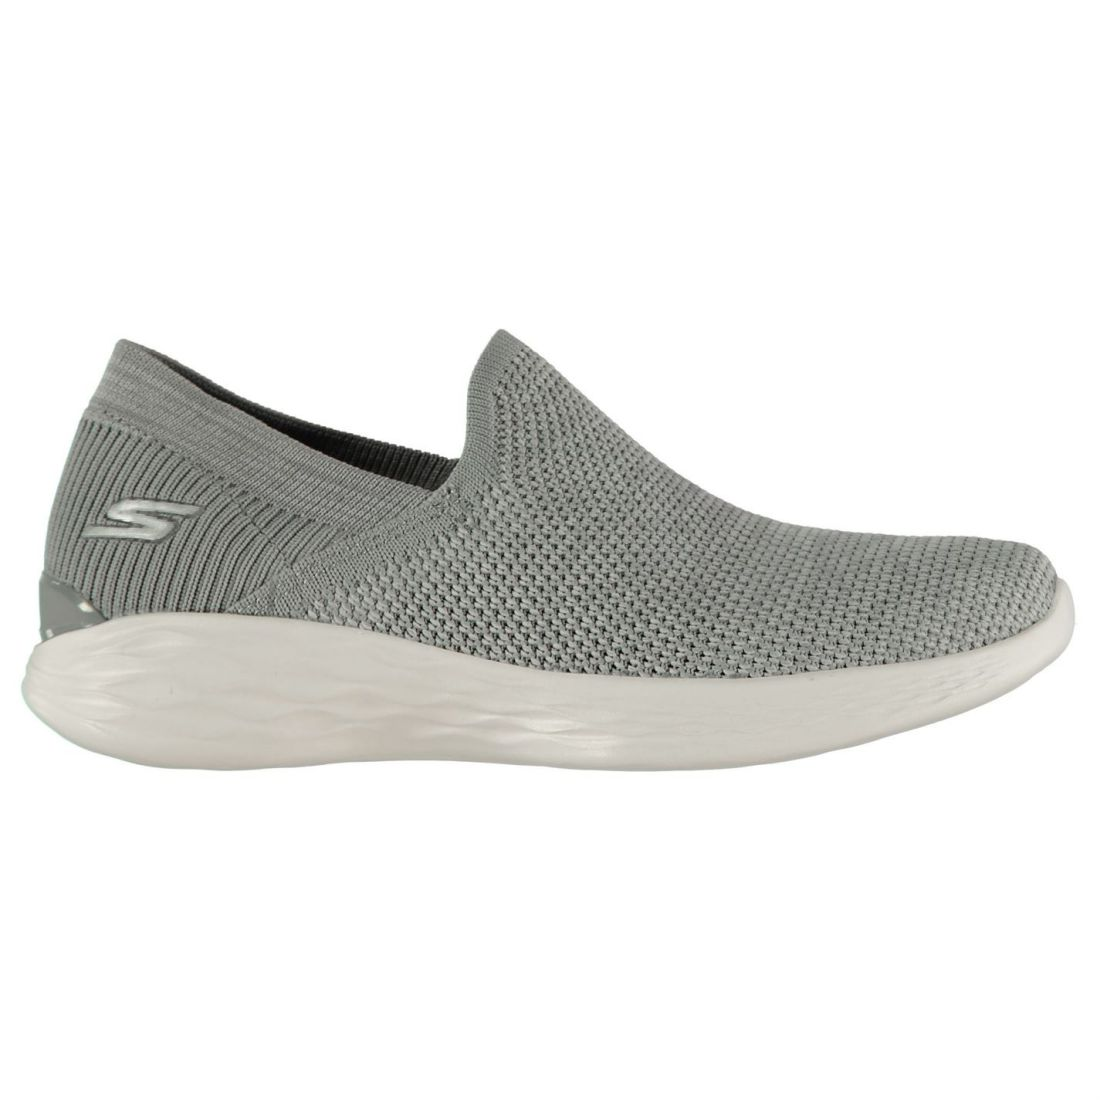 Skechers Womens YOU Rise Slip On shoes Trainers Knit Knitted Textured